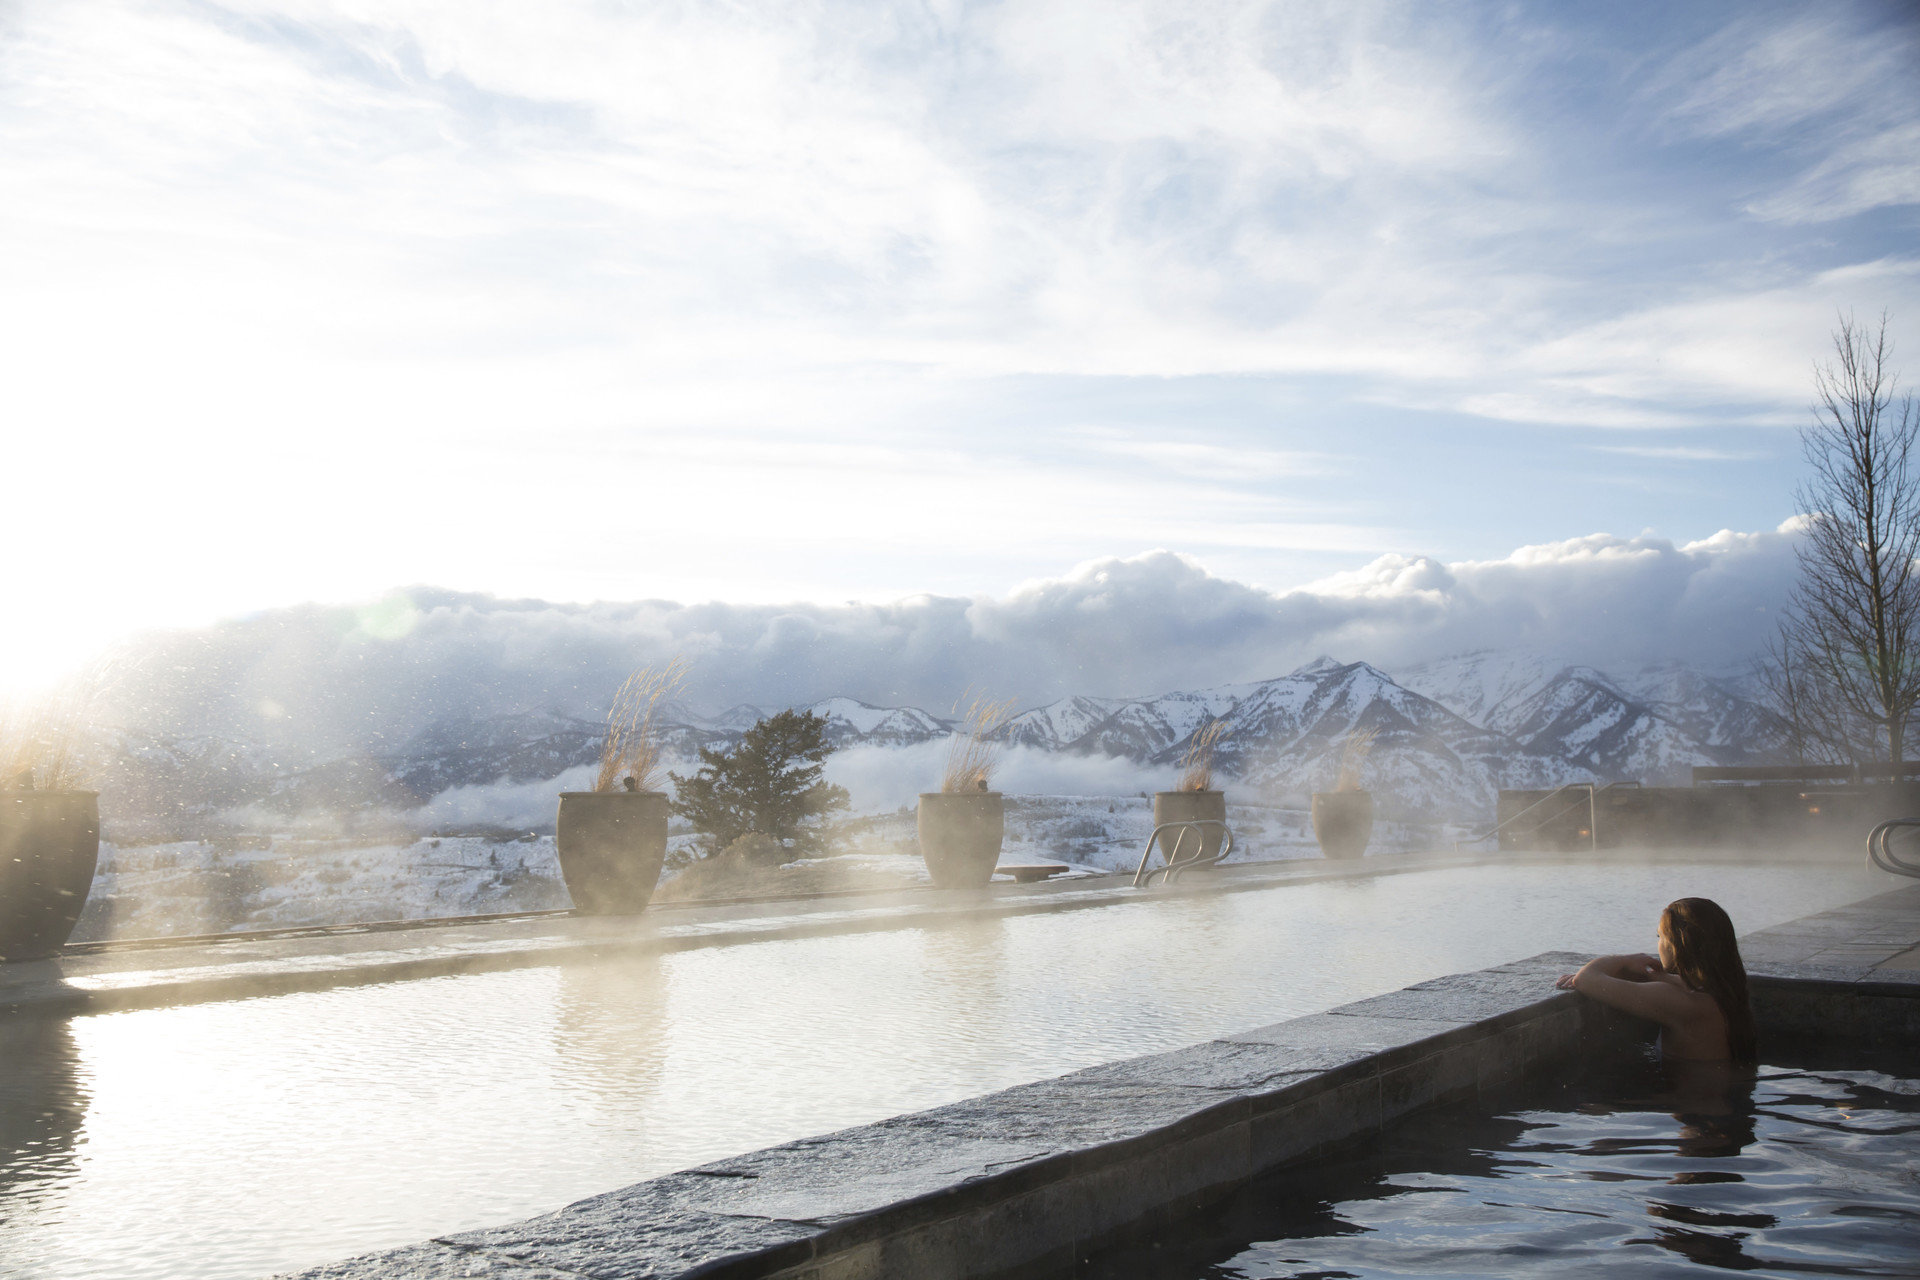 Hotels Luxury Travel Mountains + Skiing Offbeat outdoor water sky Winter atmospheric phenomenon snow weather reflection freezing Nature morning season ice River wave sunlight Lake Sea mist water feature spring shore